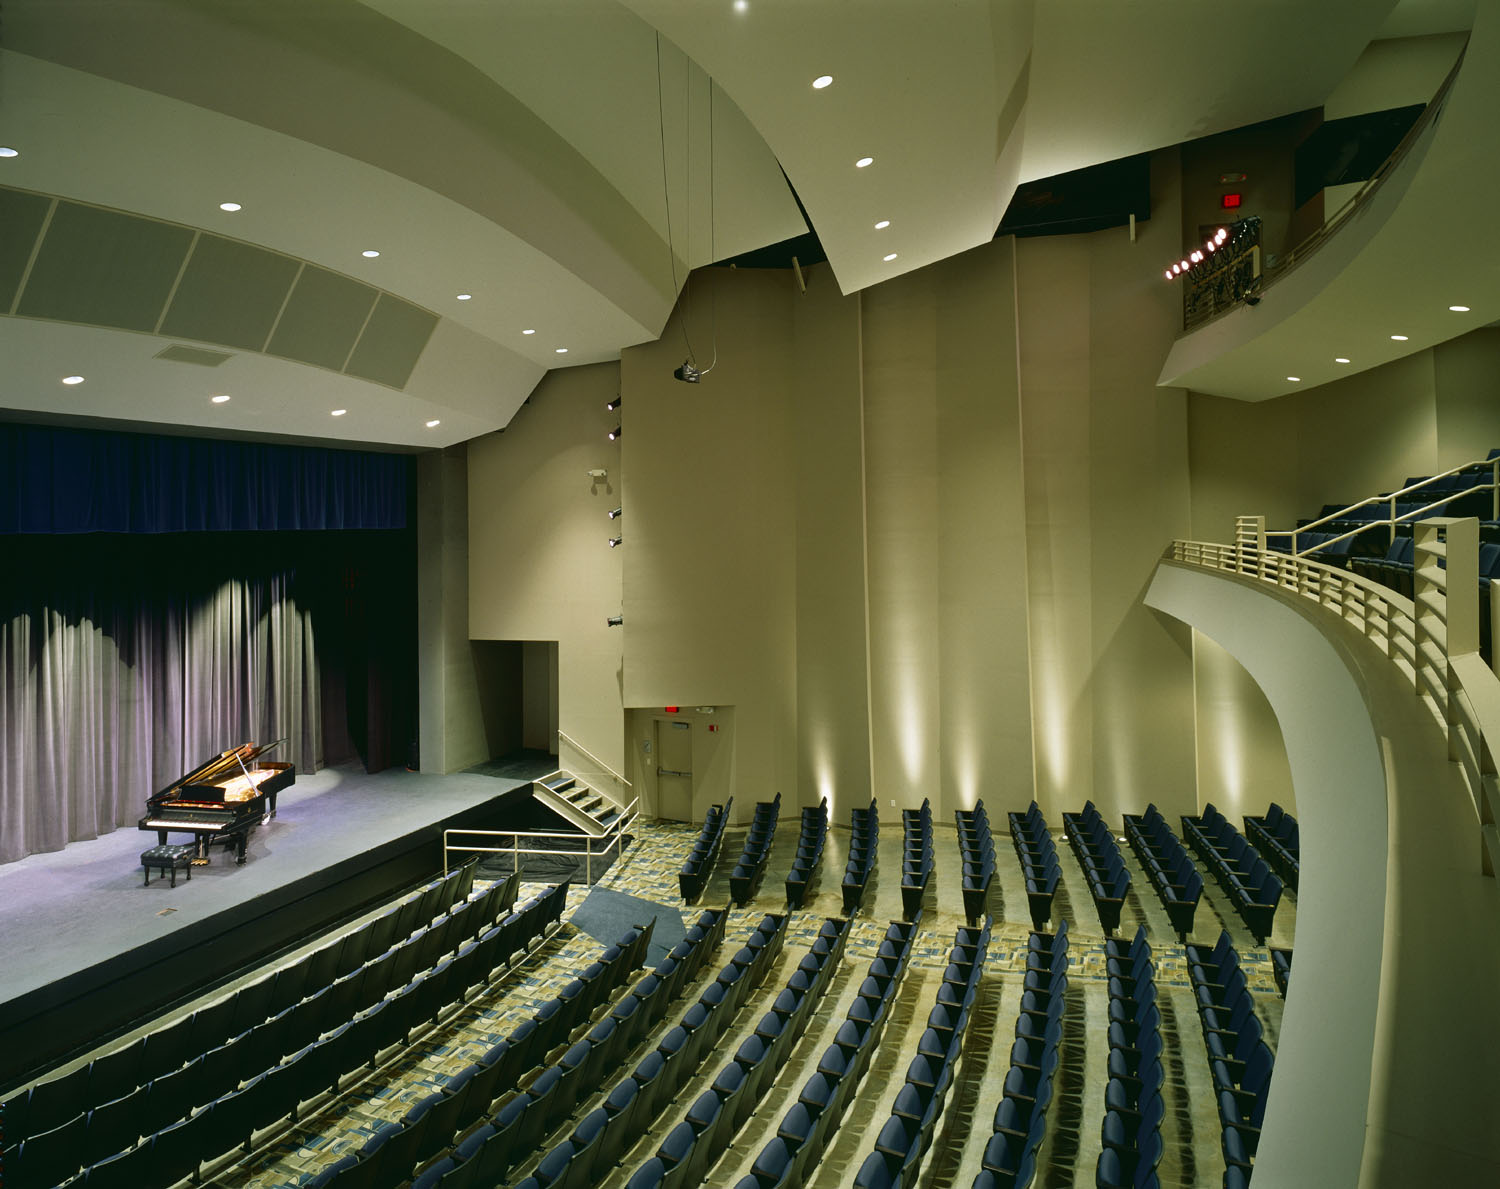 (000) 4p Int Main Hall From side 5 in.jpg